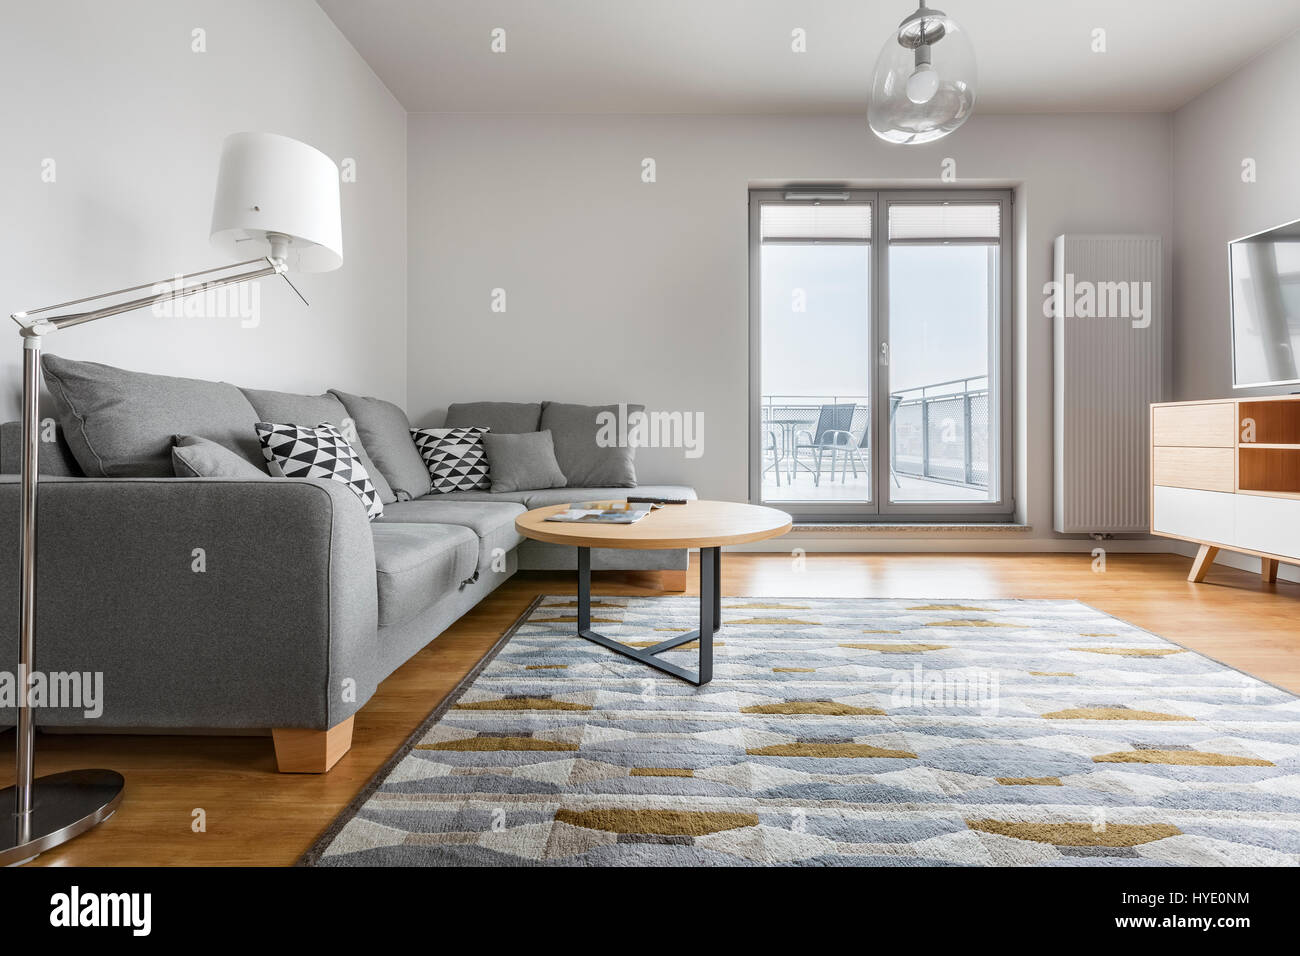 Modern Grey And White Living Room With Stylish Sofa Carpet